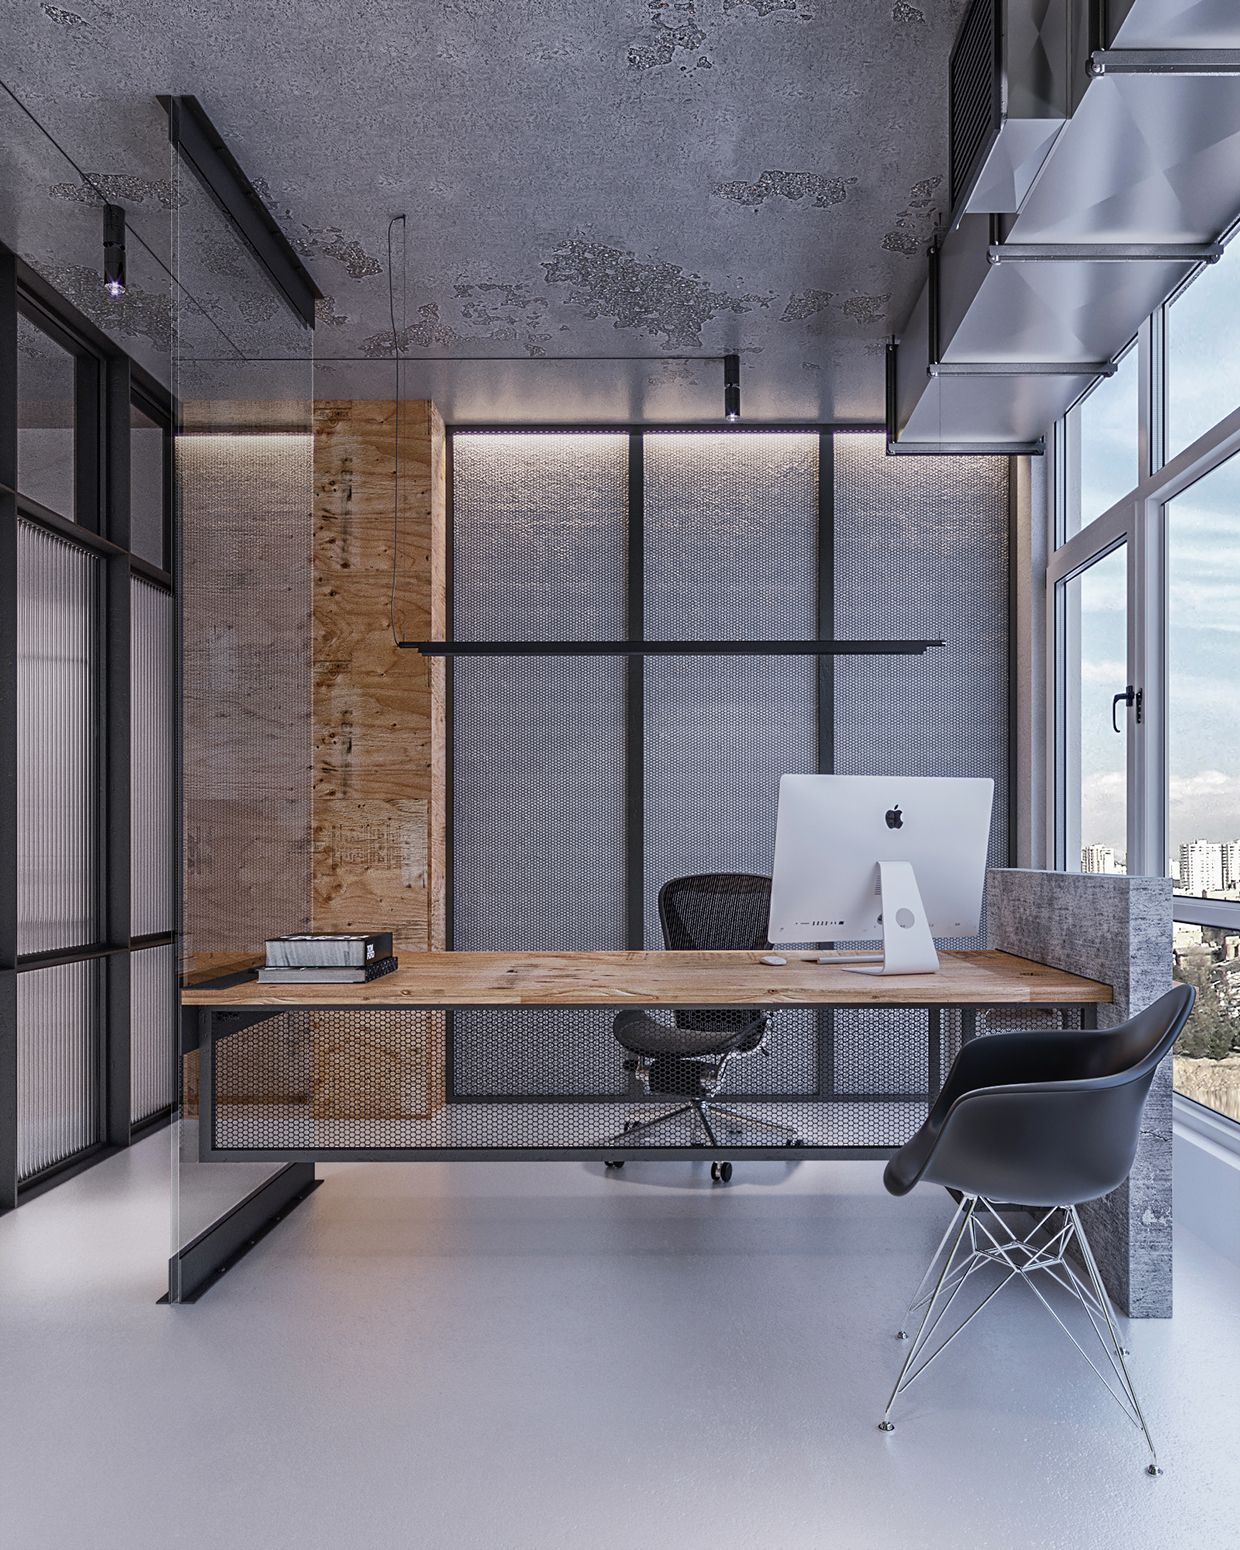 Pin de Cigdem Sumer en office | Pinterest | Oficinas, Decoración de ...